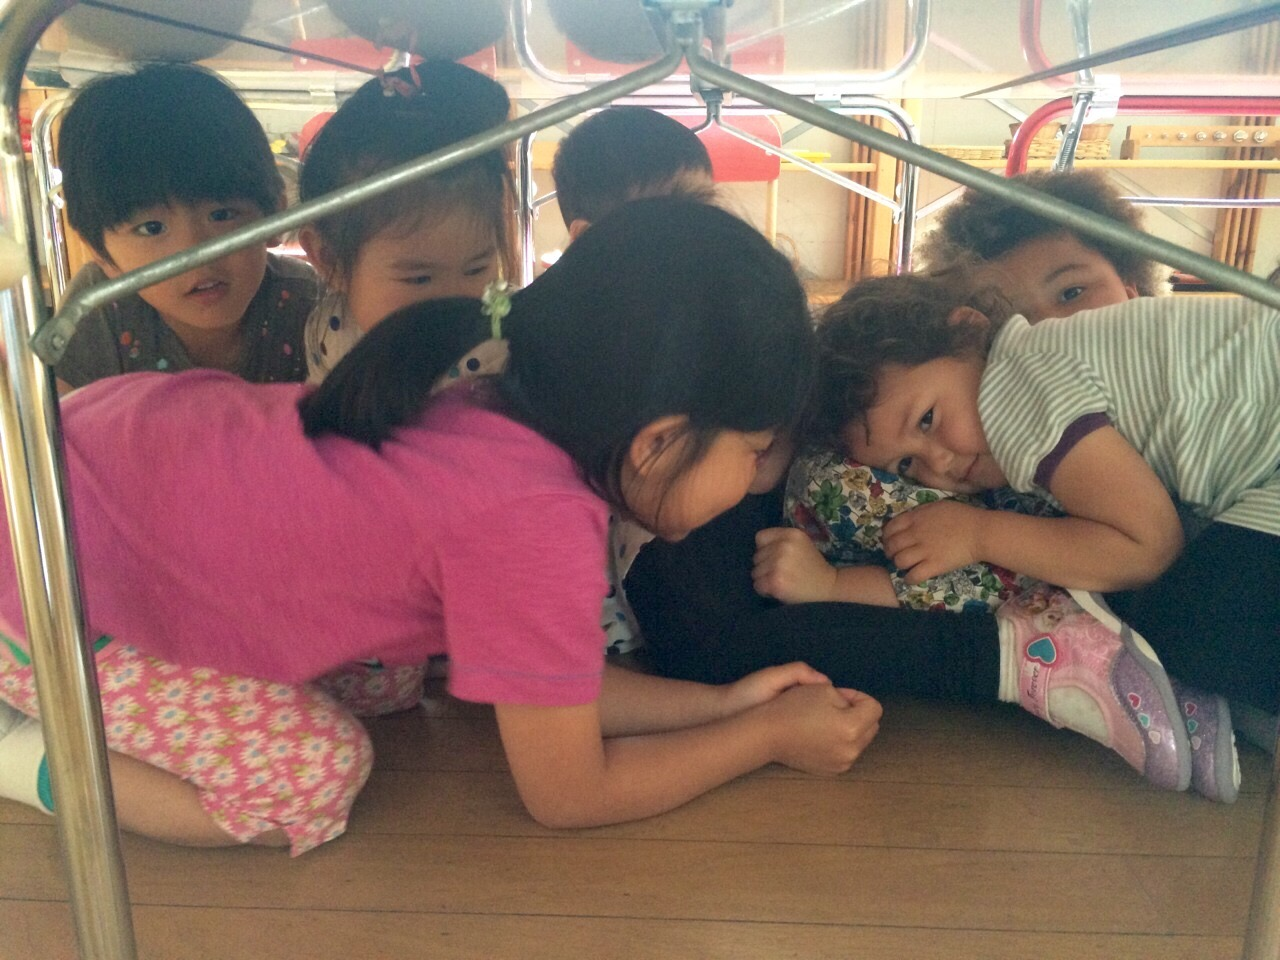 Children practicing going under the table.